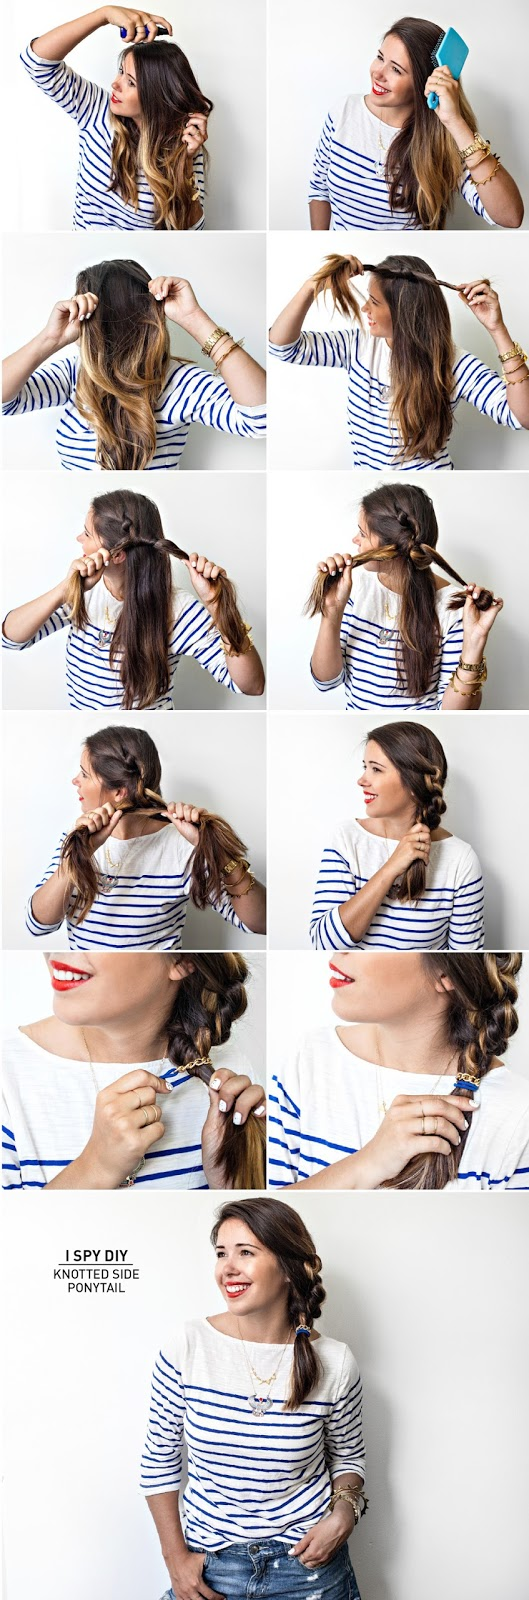 DIY knotted side ponytail